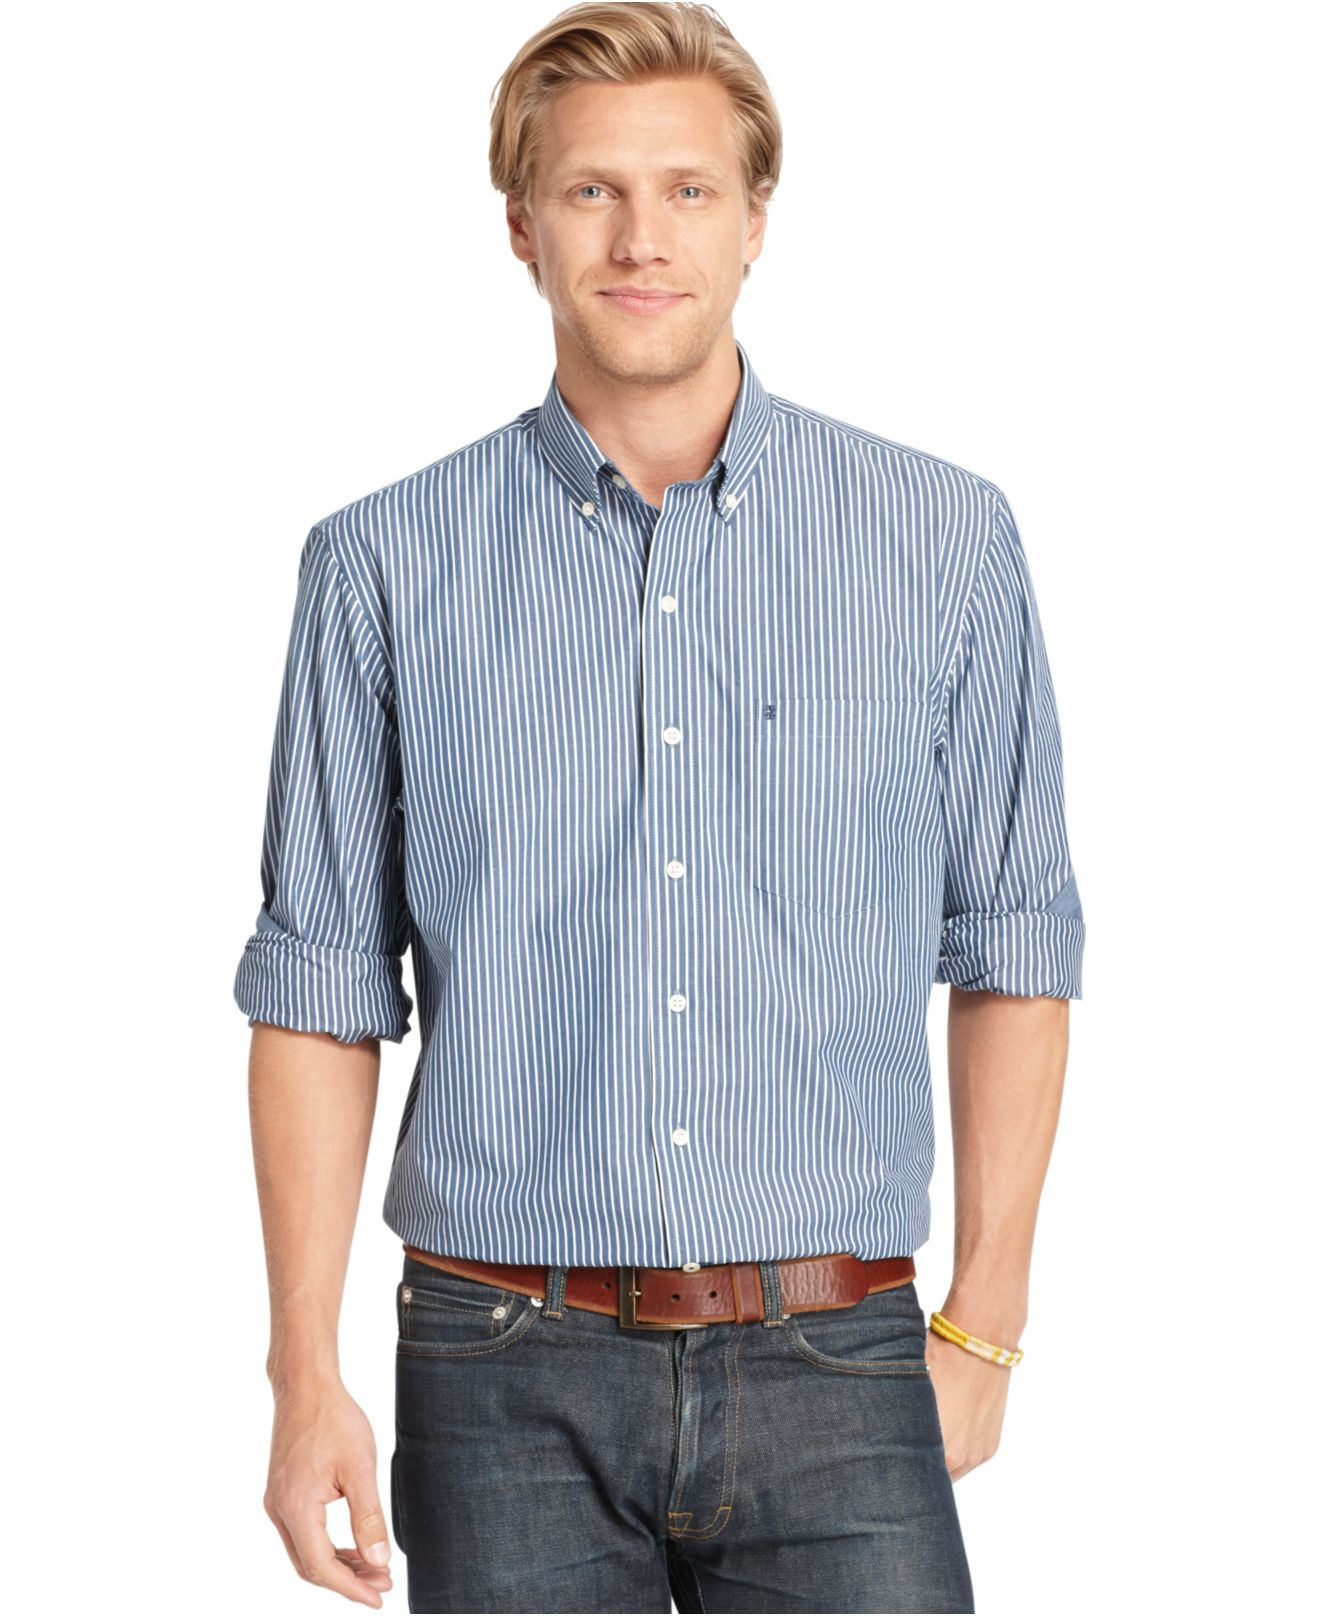 Izod big and tall long sleeve striped shirt in blue for for Izod big and tall shirts